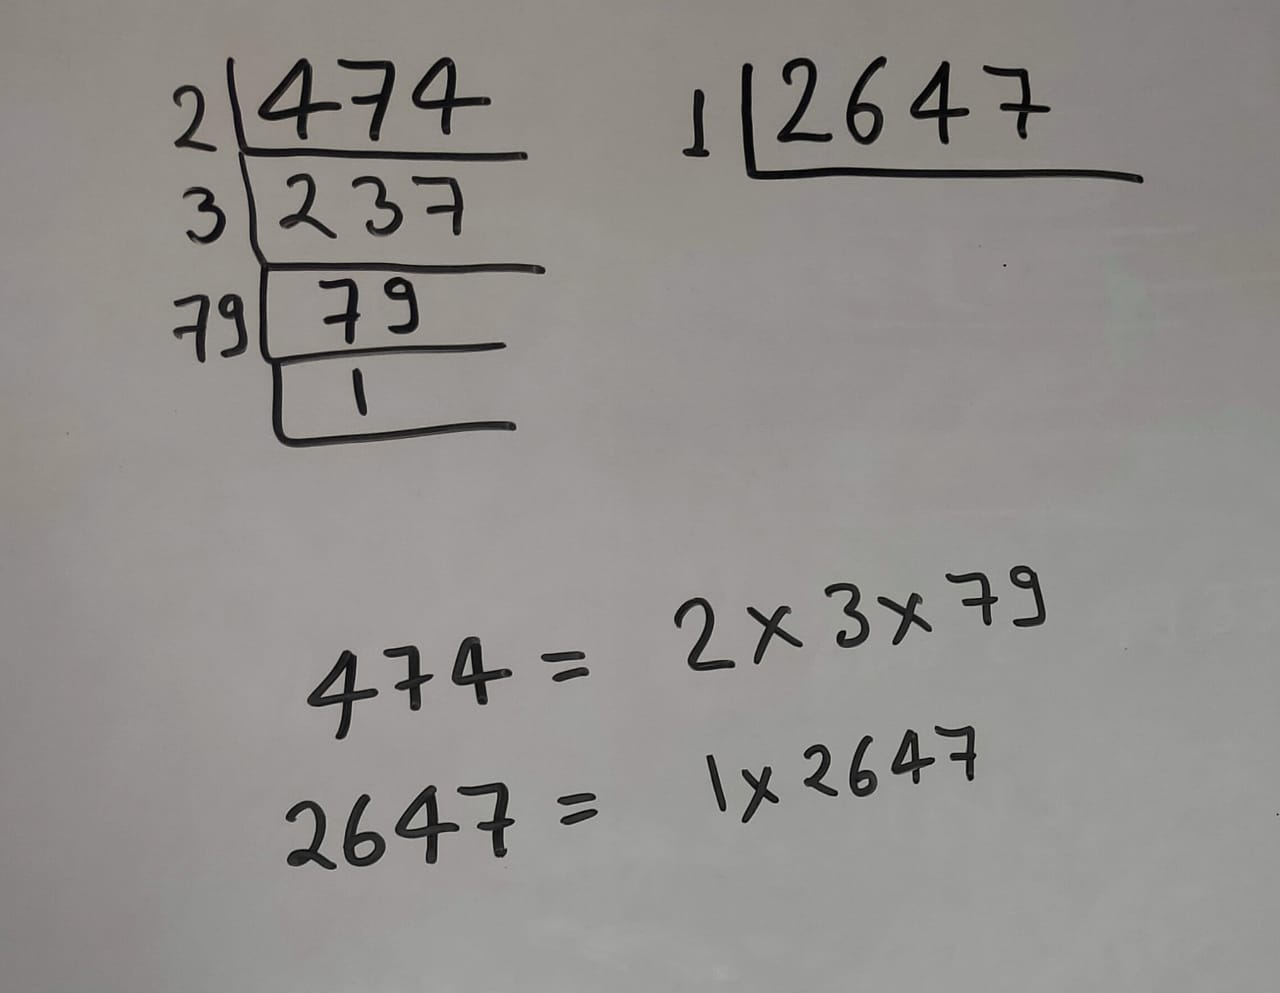 HCF of 474 And 2647 By Prime Factorization Method